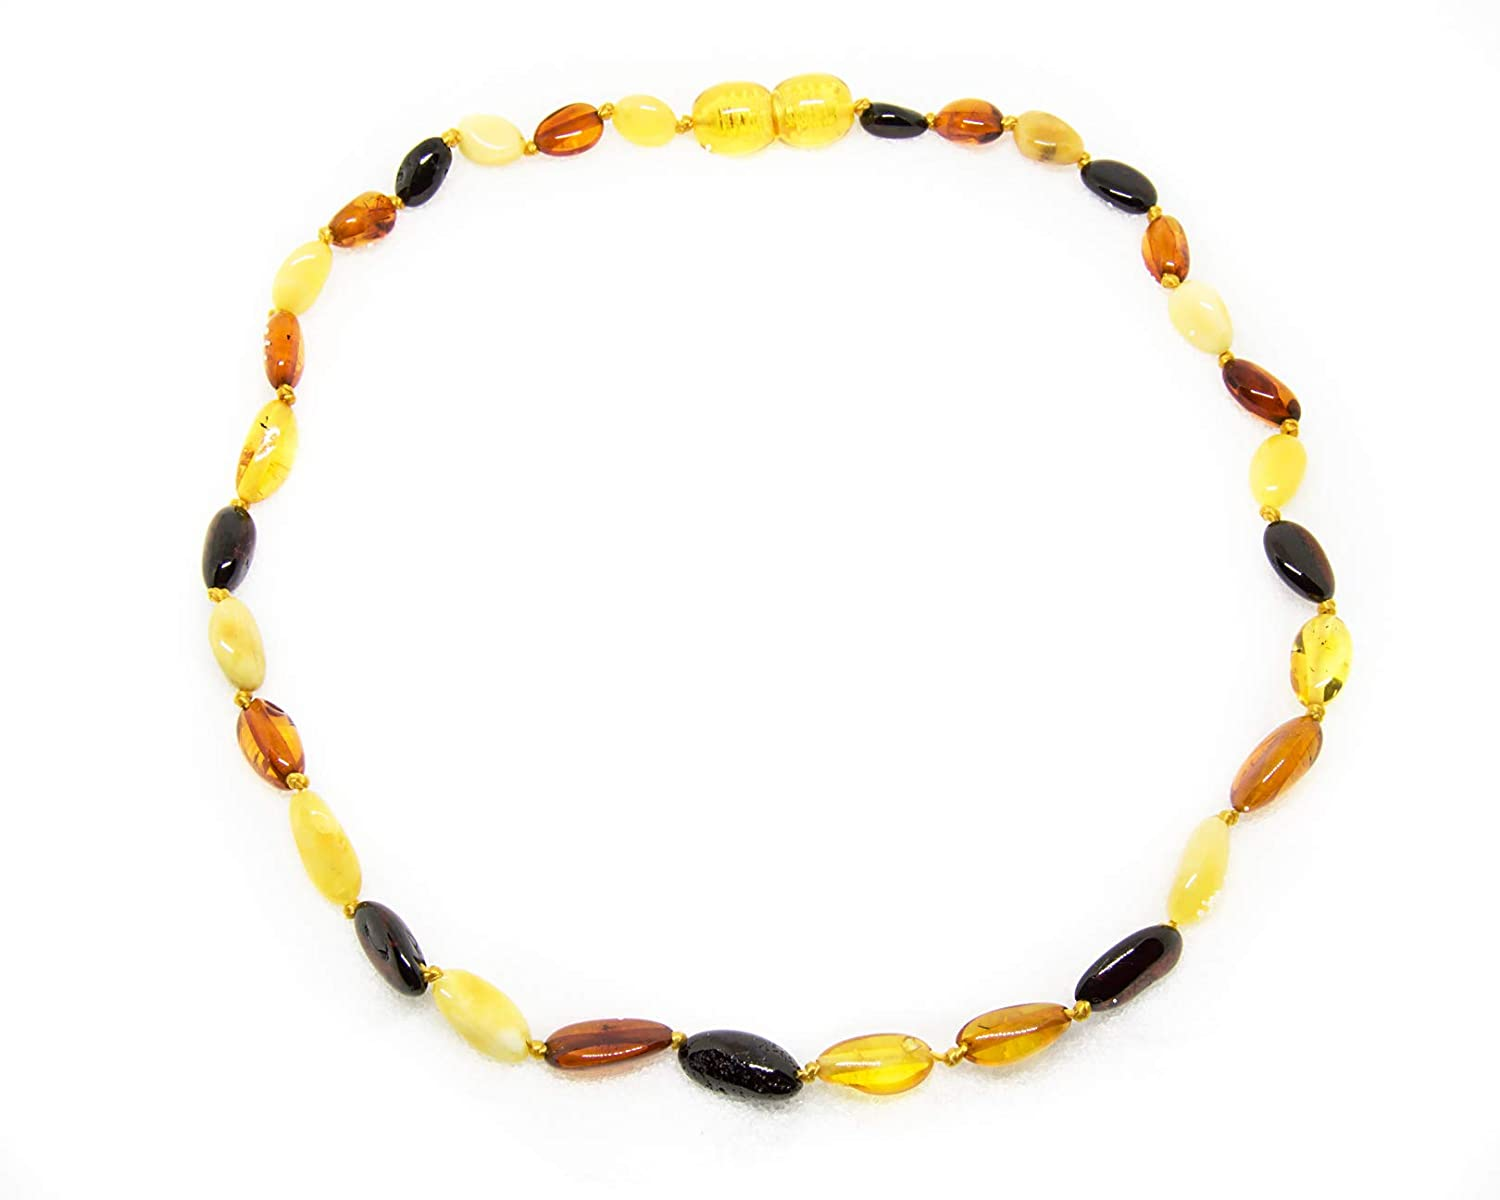 12-12.5 Inches size The Art of Cure Original Baltic Amber Necklace- Polished Handmade Multi-Color Beans for boy or girl